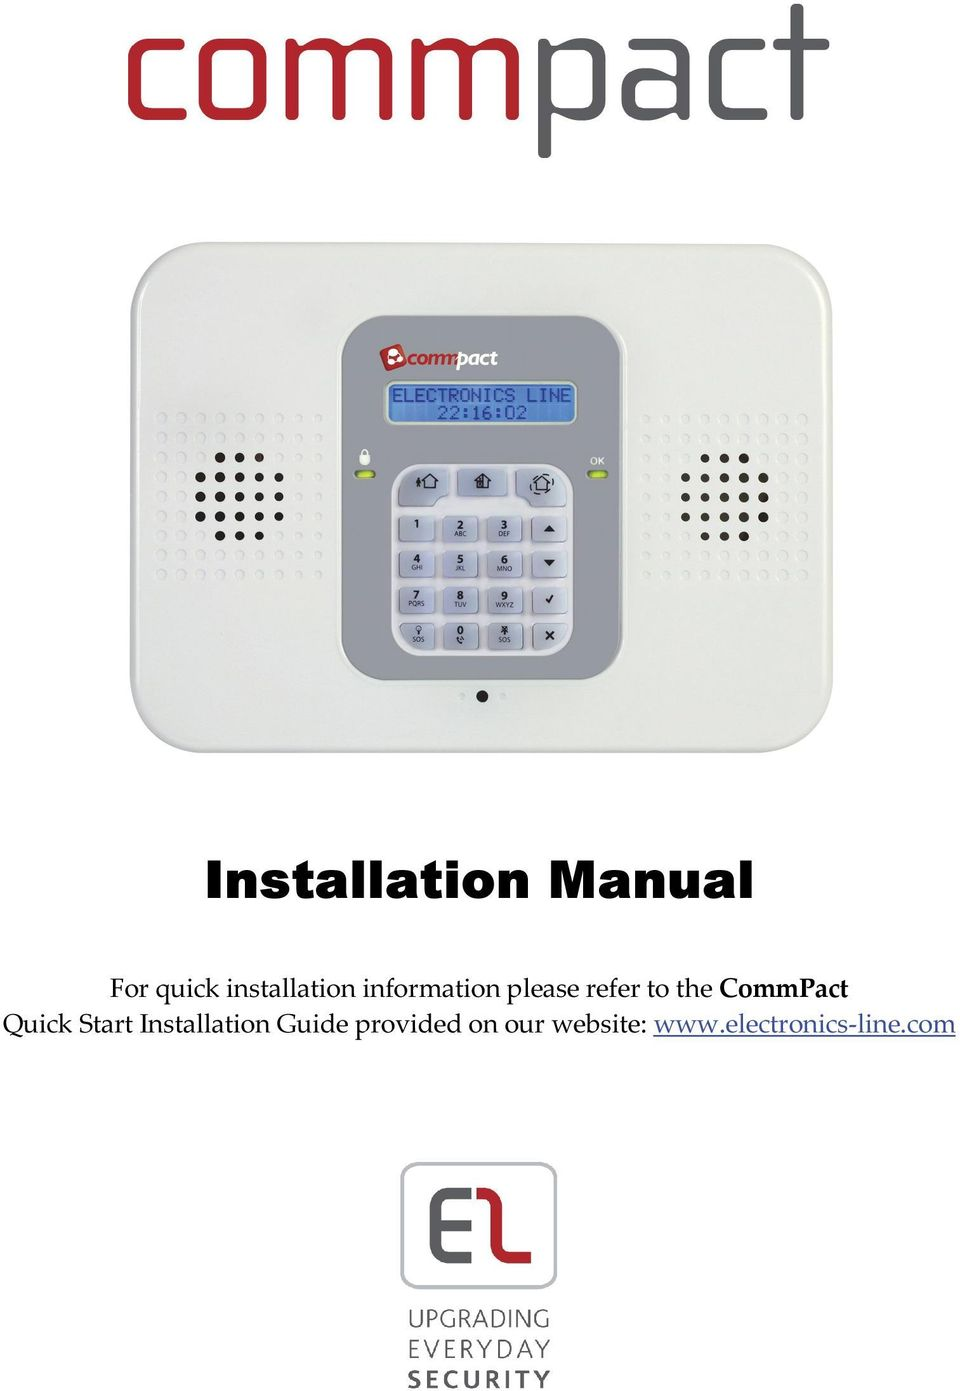 the CommPact Quick Start Installation